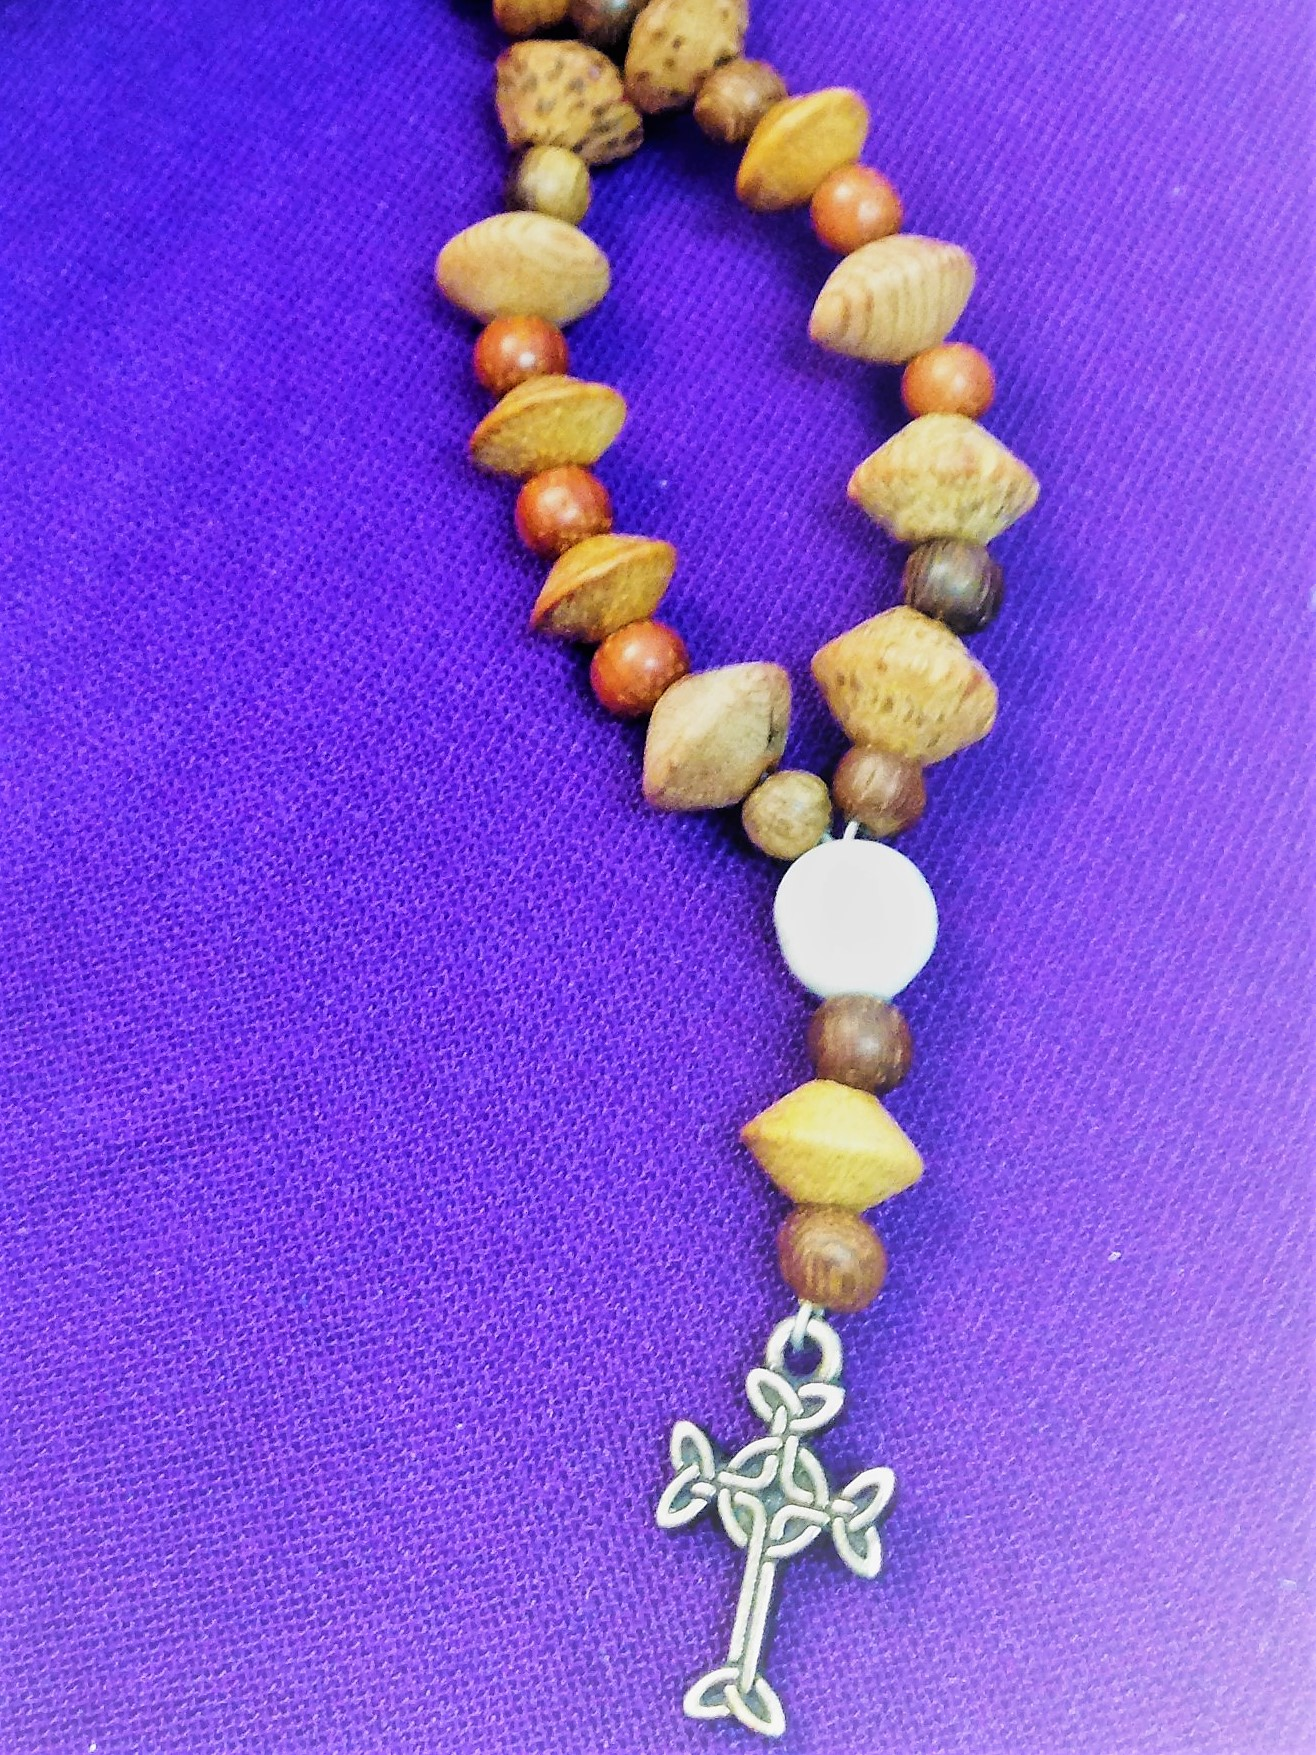 hight resolution of practice people s prayer beads